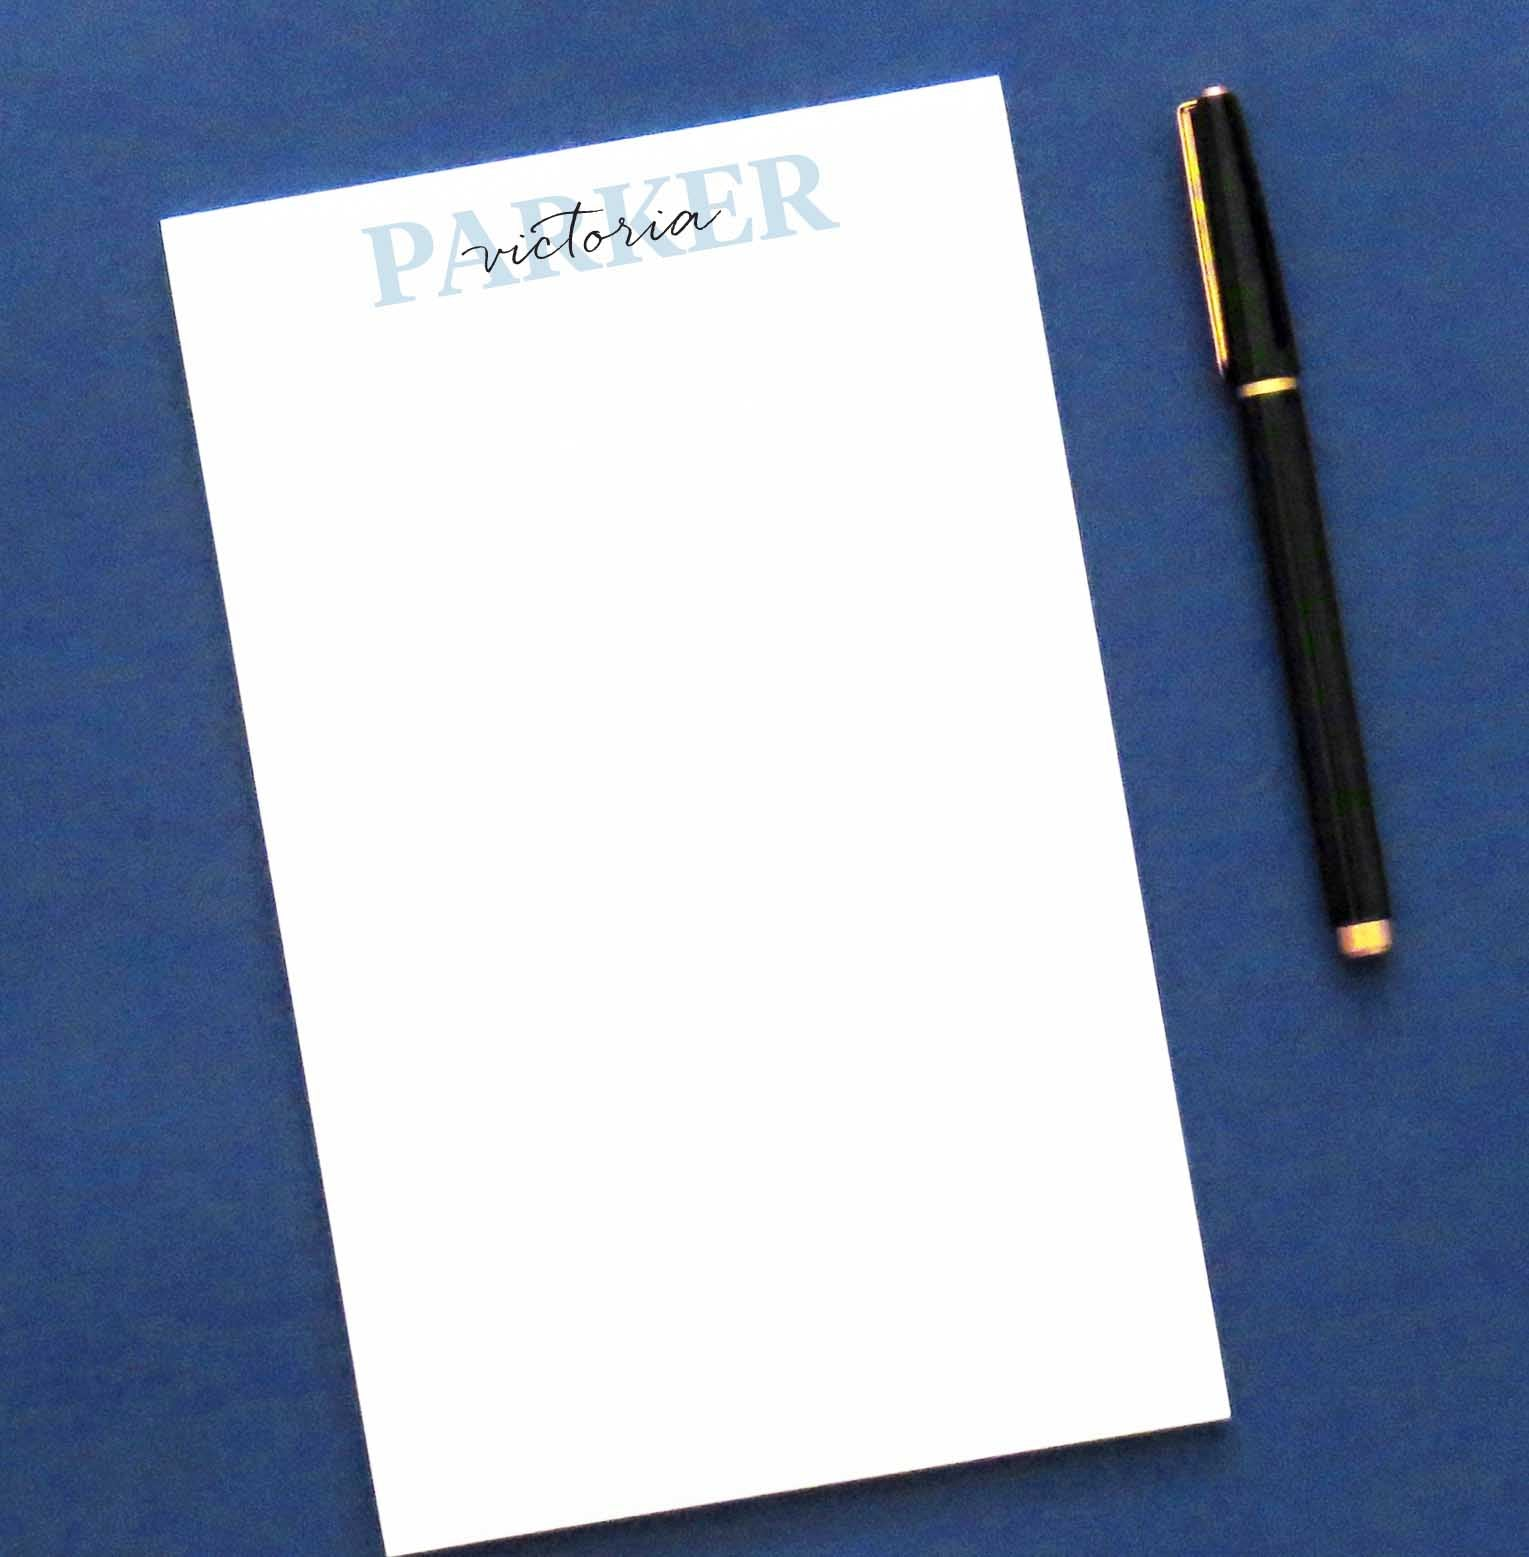 NP186 first and last name personalized notepads writing paper